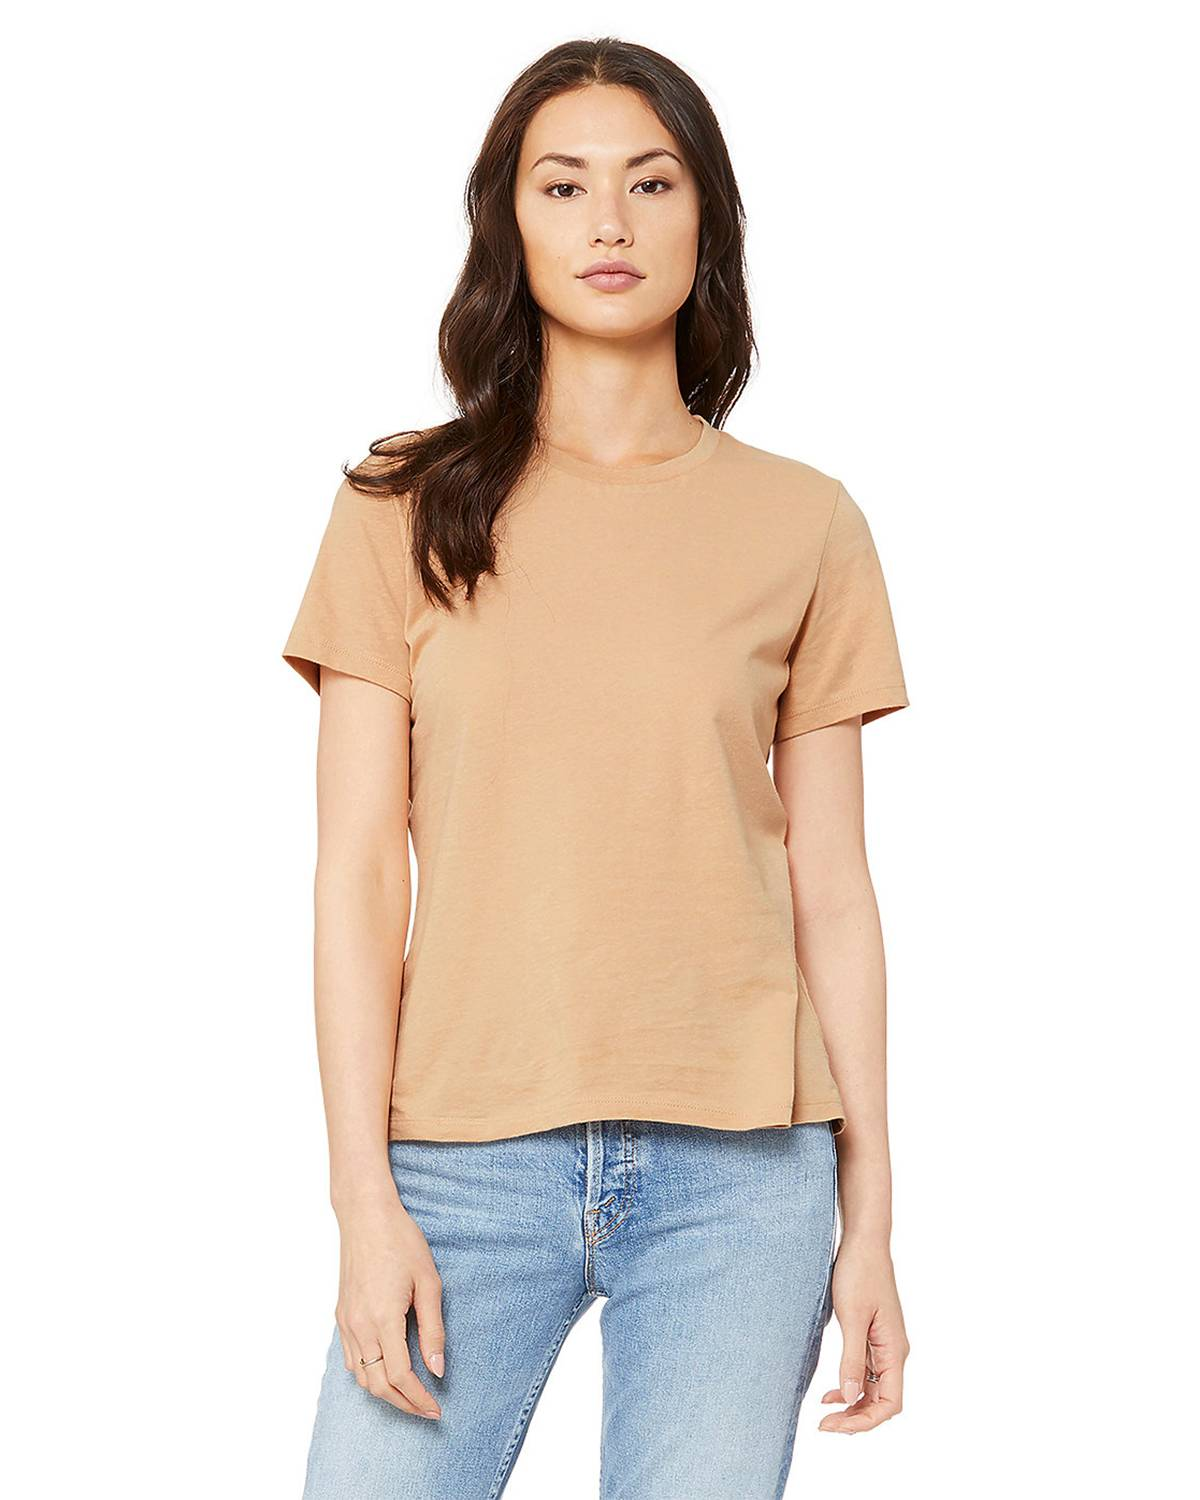 Bella + Canvas B6400 Women's Missys Relaxed Jersey Short-Sleeve T-Shirt - Sand Dune - S from Bella + Canvas